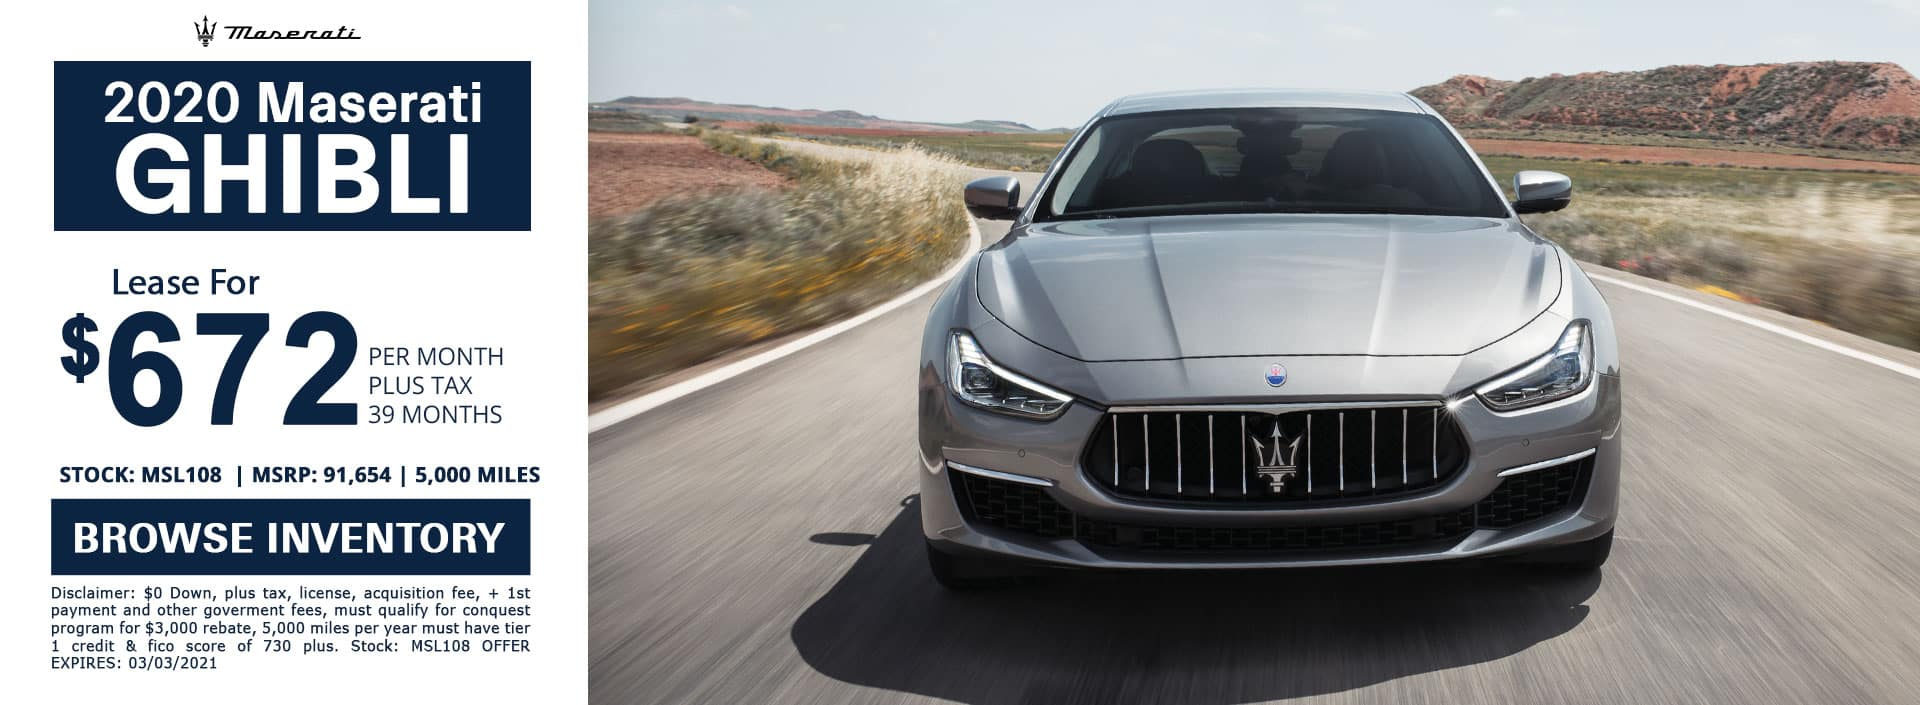 New 2020 Maserati Ghibli lease special in los angeles